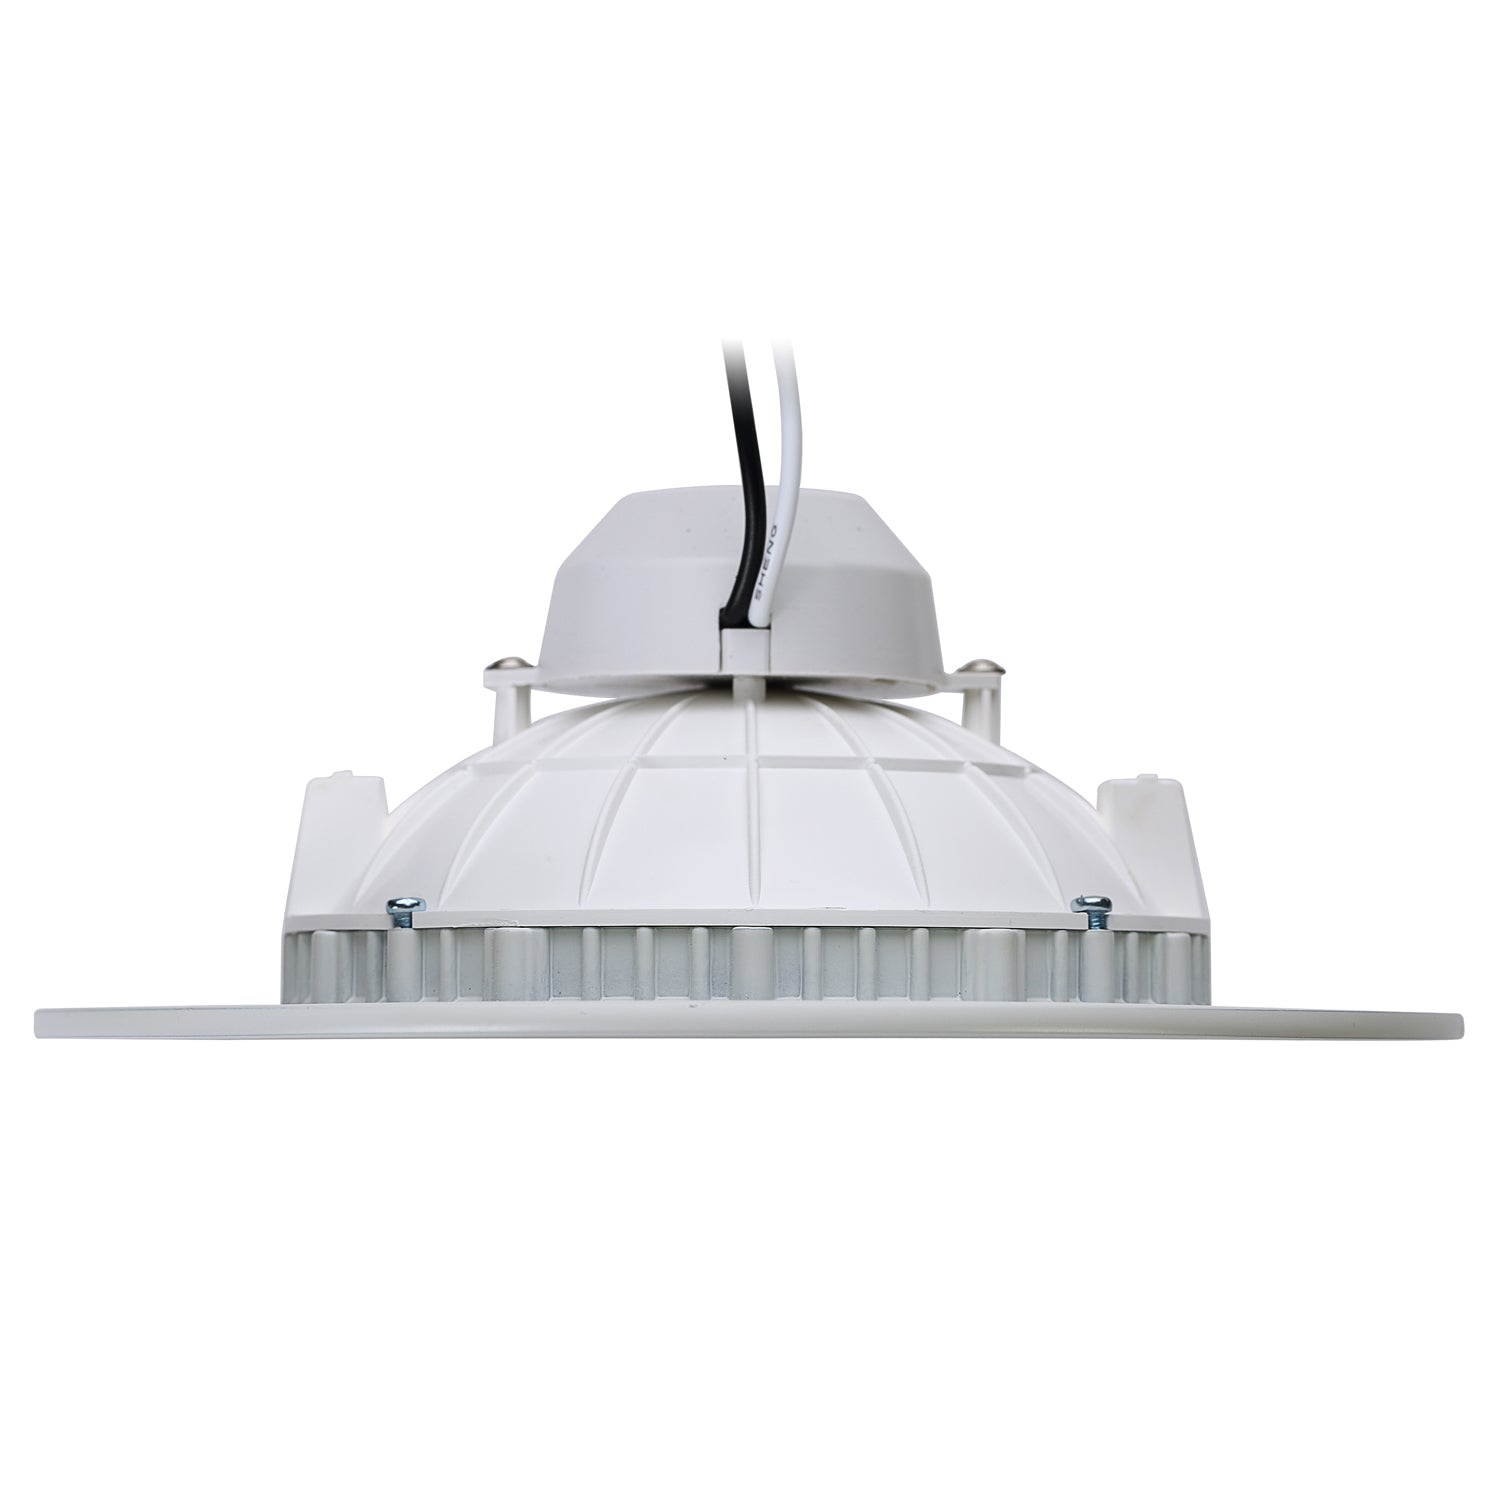 Patented 5-inch and 6-inch LED Recessed Light Trim with E26 Connector